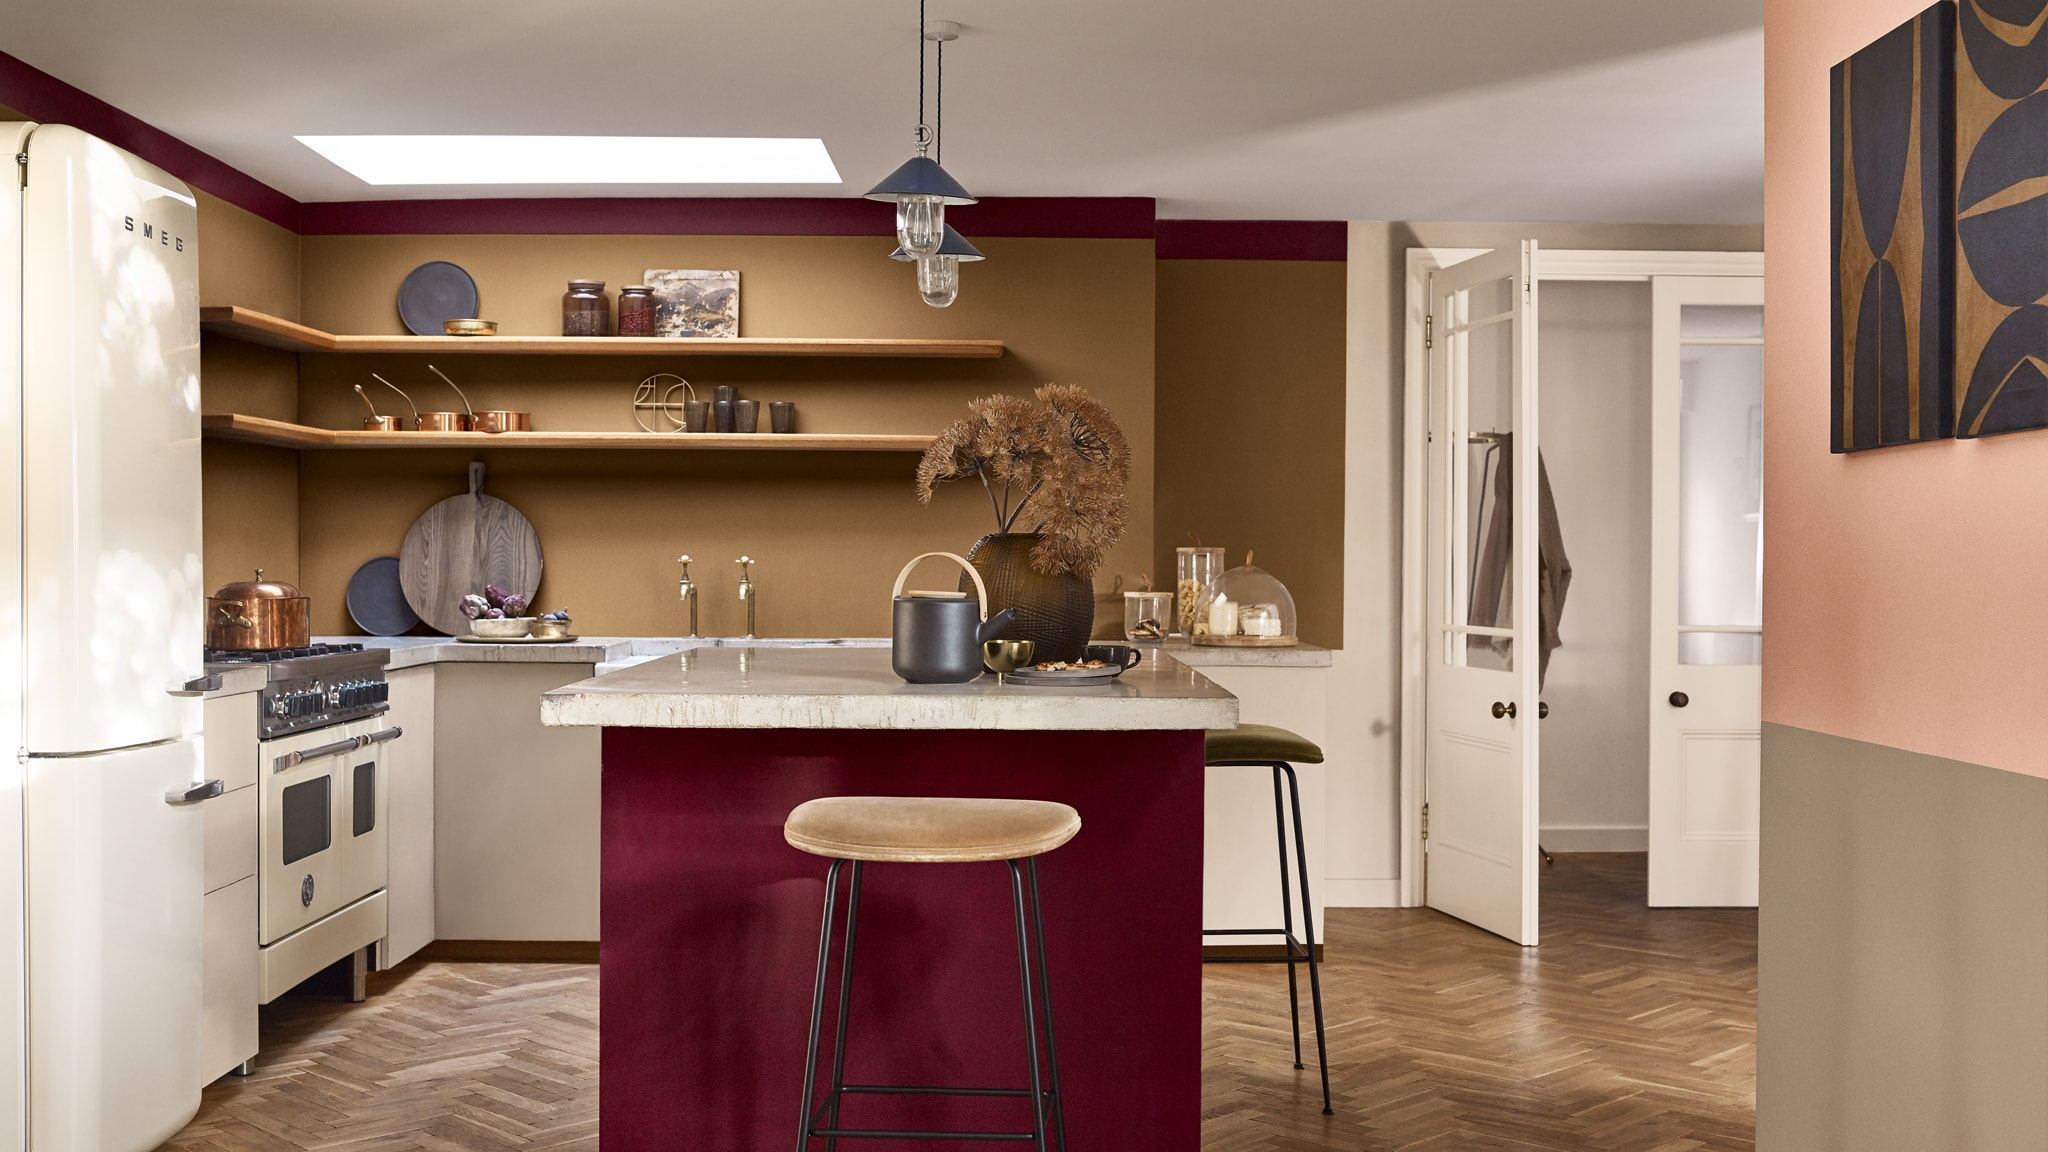 Deco-Paints-Colour-Futures-Colour-of-the-Year-2019-A-place-to-think-Kitchen-Inspiration-46